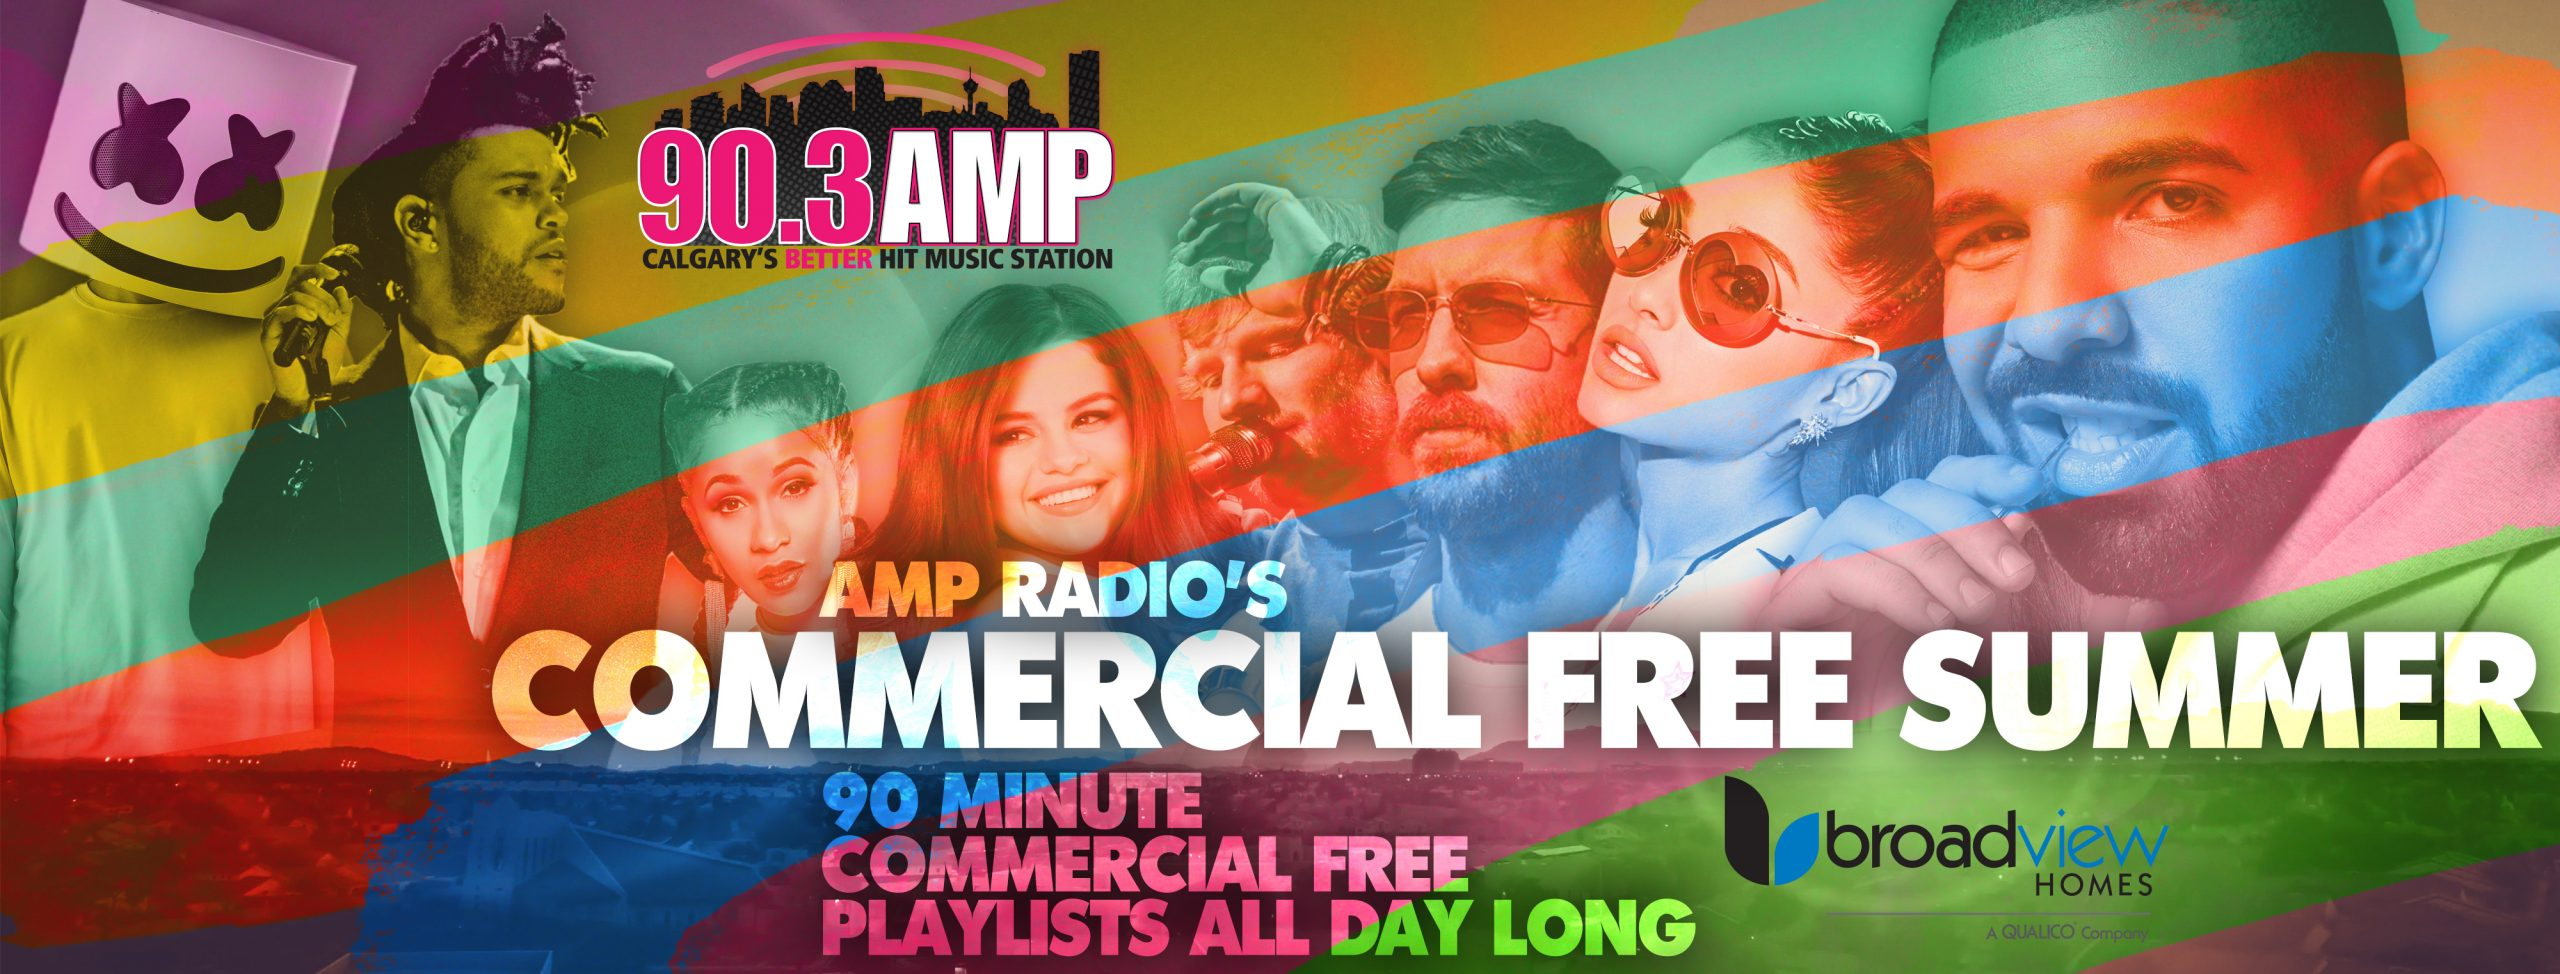 AMP Radio's Commercial Free Summer